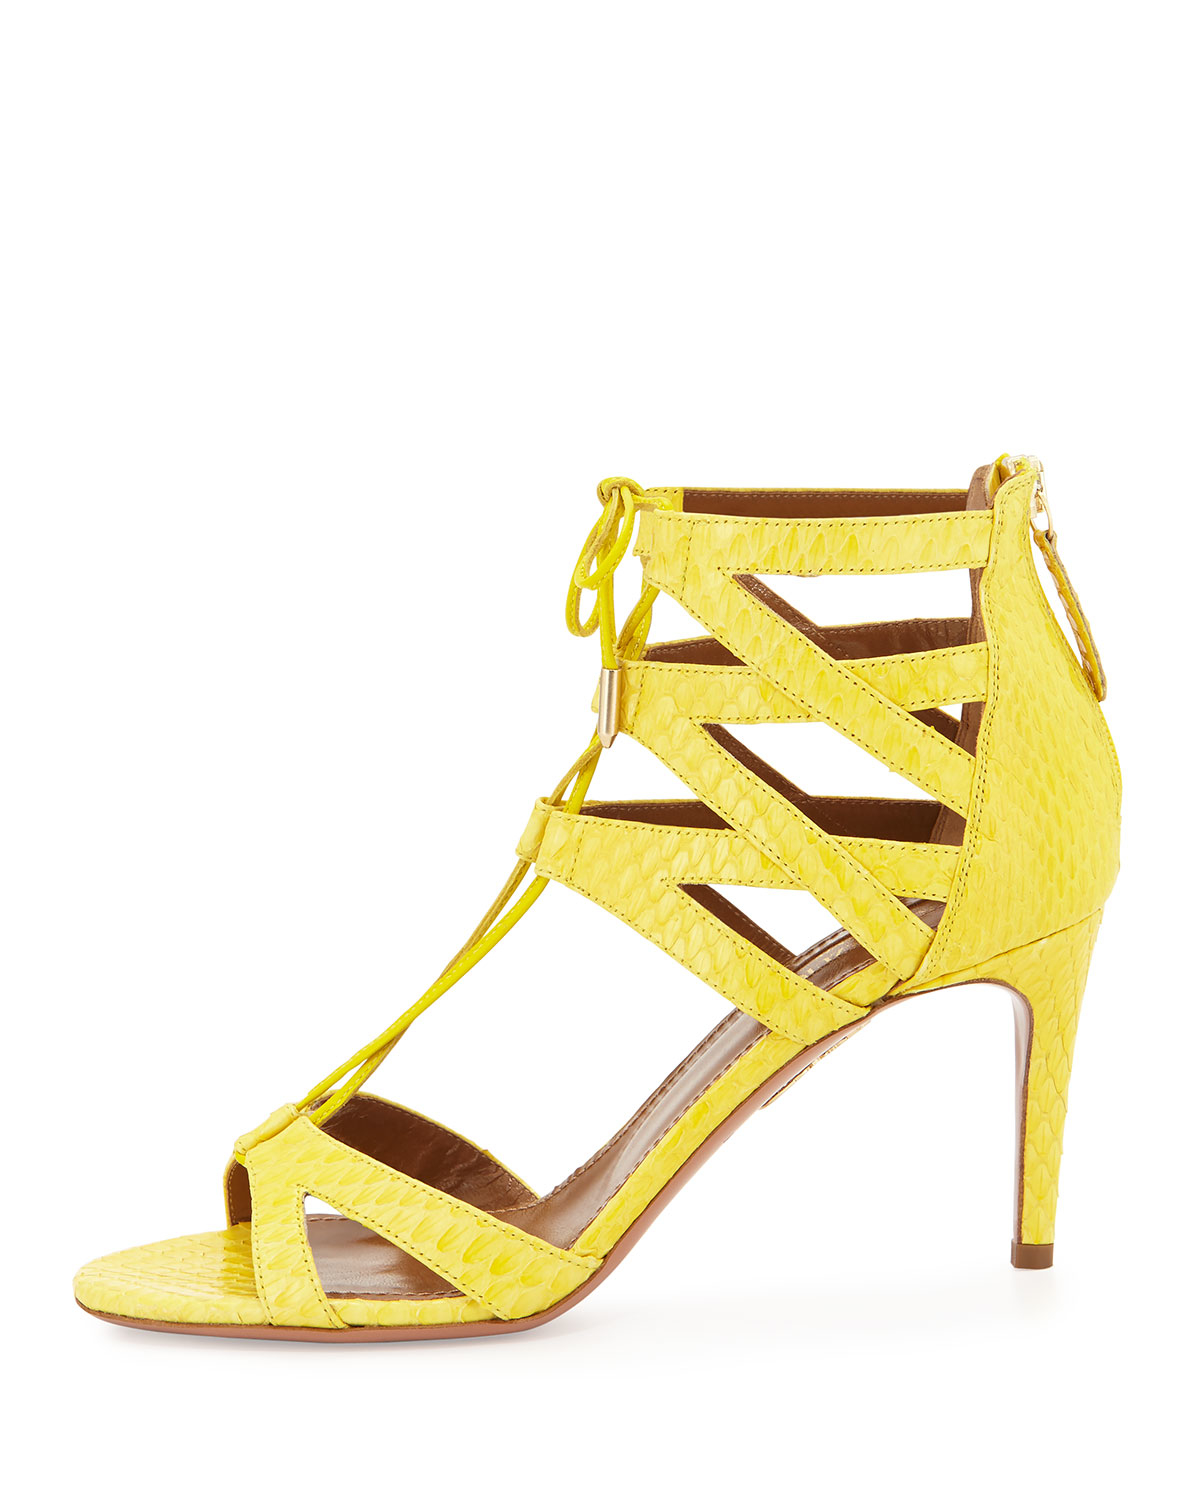 Lyst - Aquazzura Beverly Hills Snakeskin Sandals in Yellow